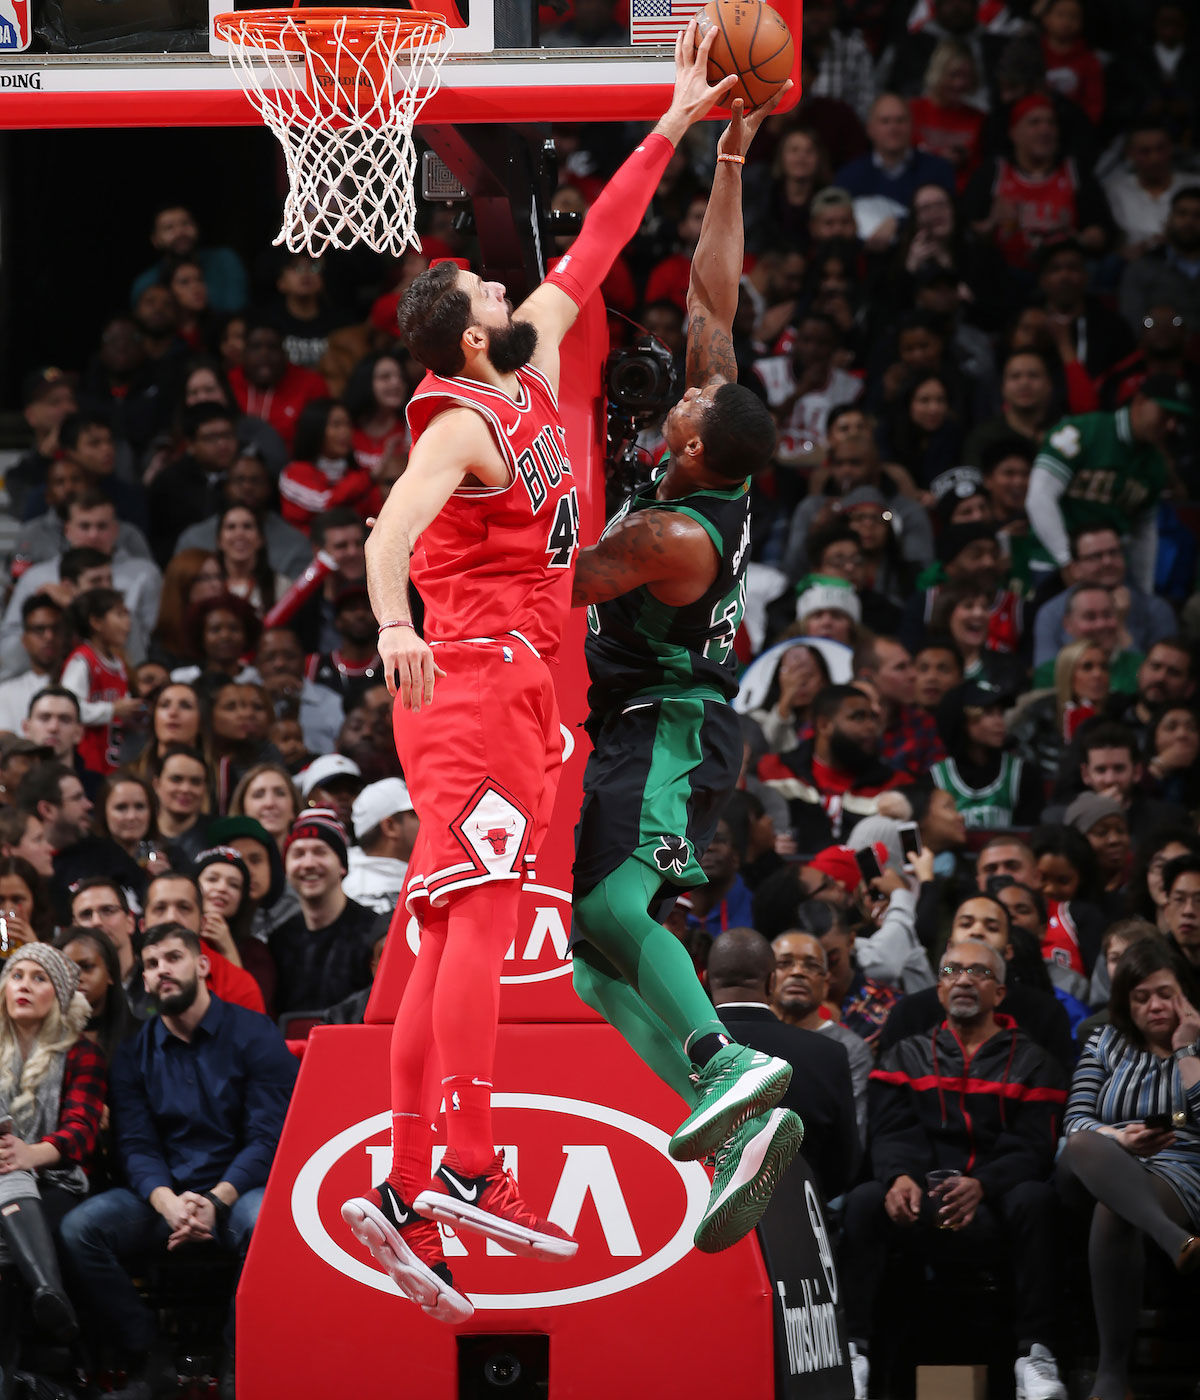 Nikola Mirotic #44 of the Chicago Bulls blocks a shot by Marcus Smart #36 of the Boston Celtics on December 11, 2017 at the United Center in Chicago, Illinois.